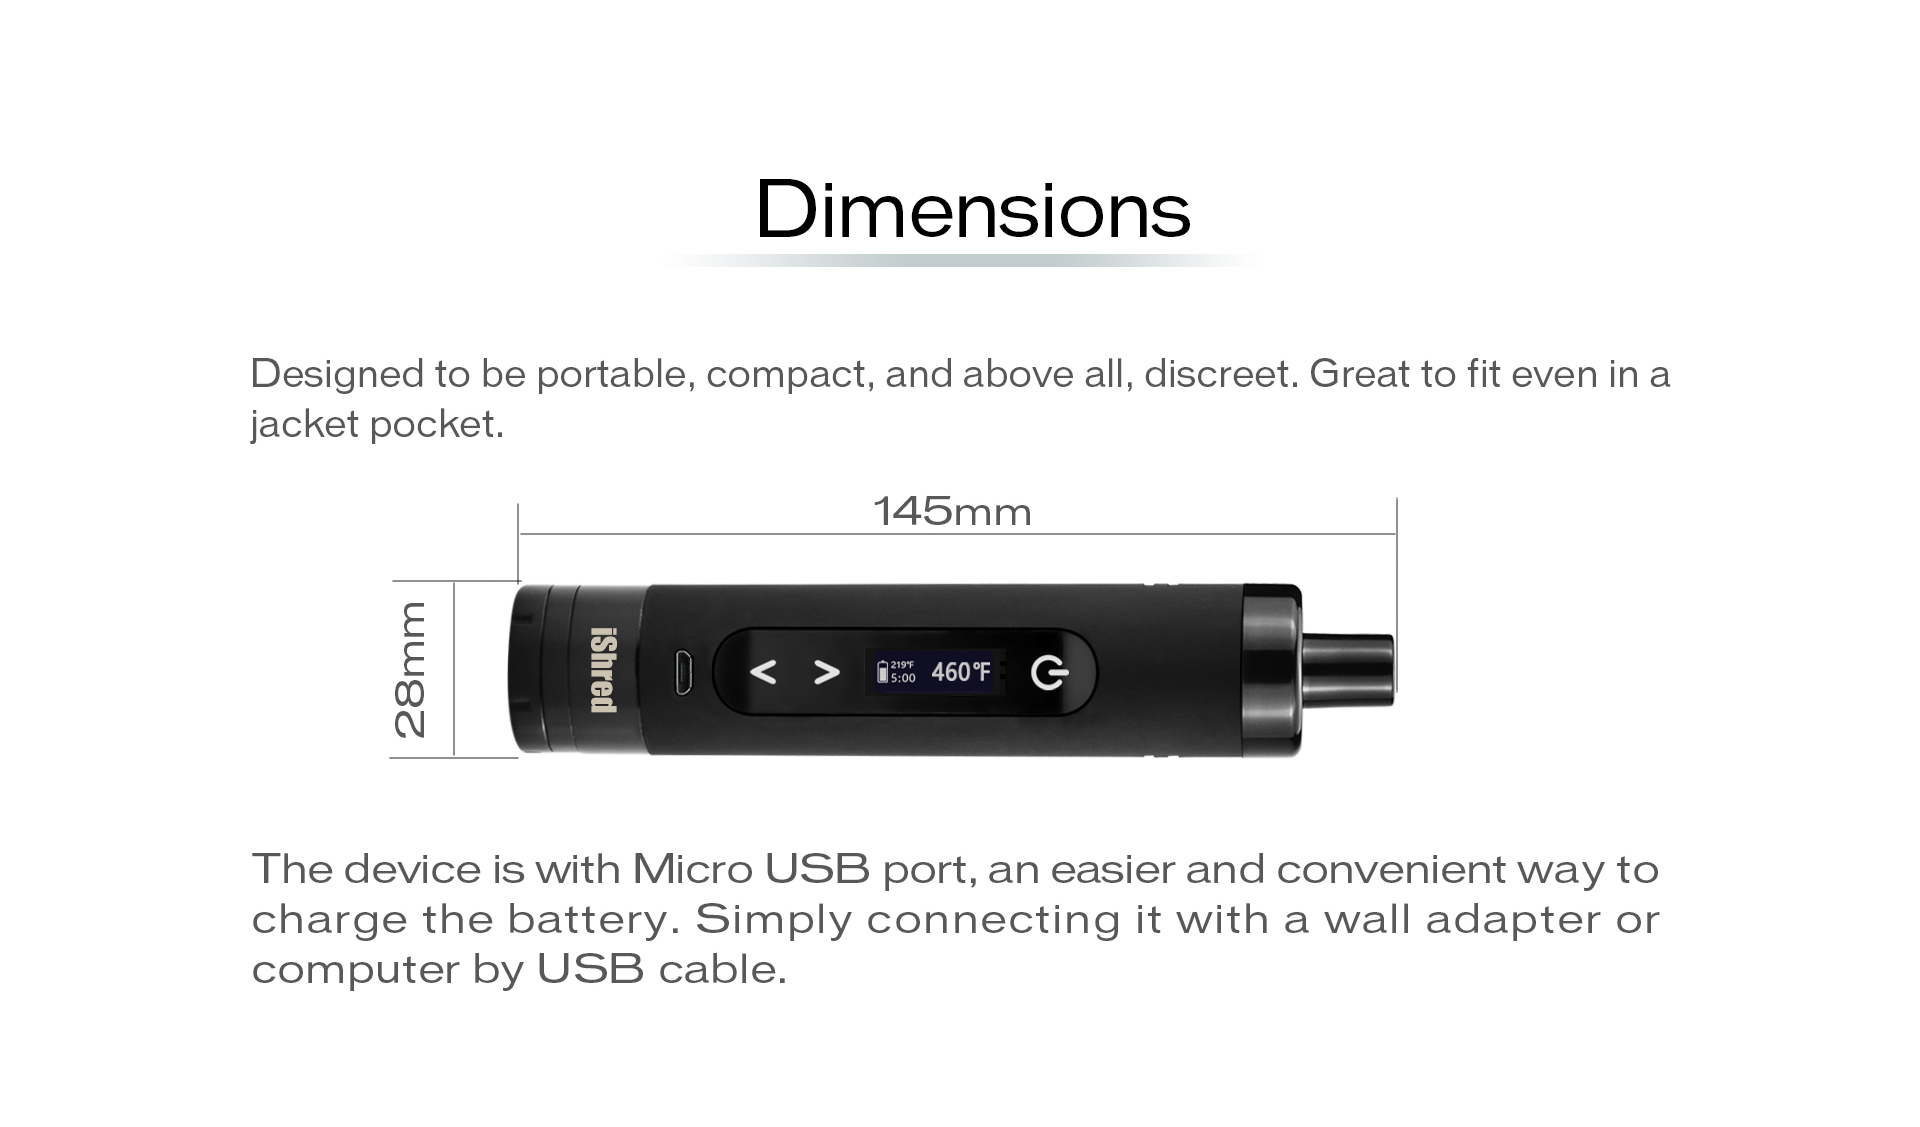 Yocan iShred designed to be portable, compact, and above all, discreet.